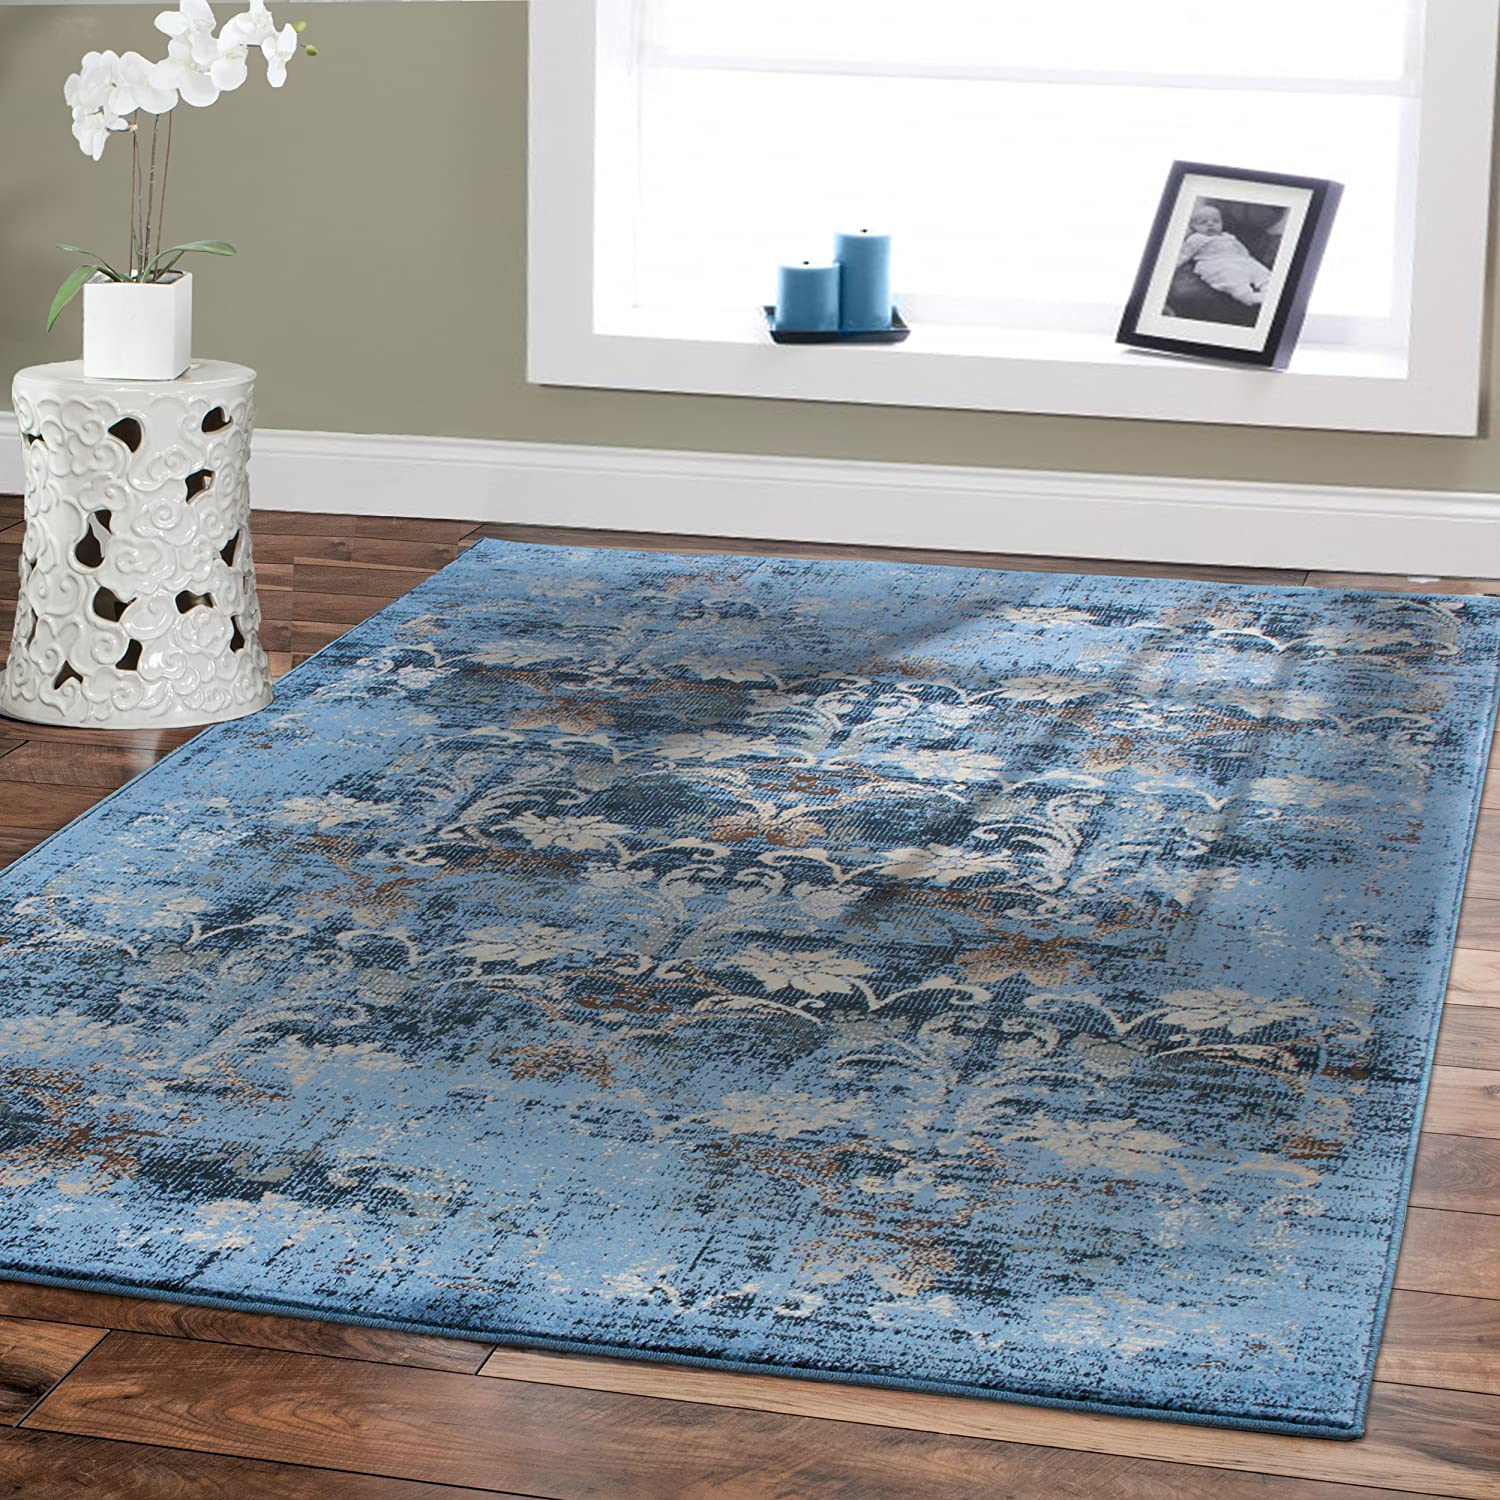 color carpet area rugs living room should full large cheap for with rug size match ideas of wall trends target decorating